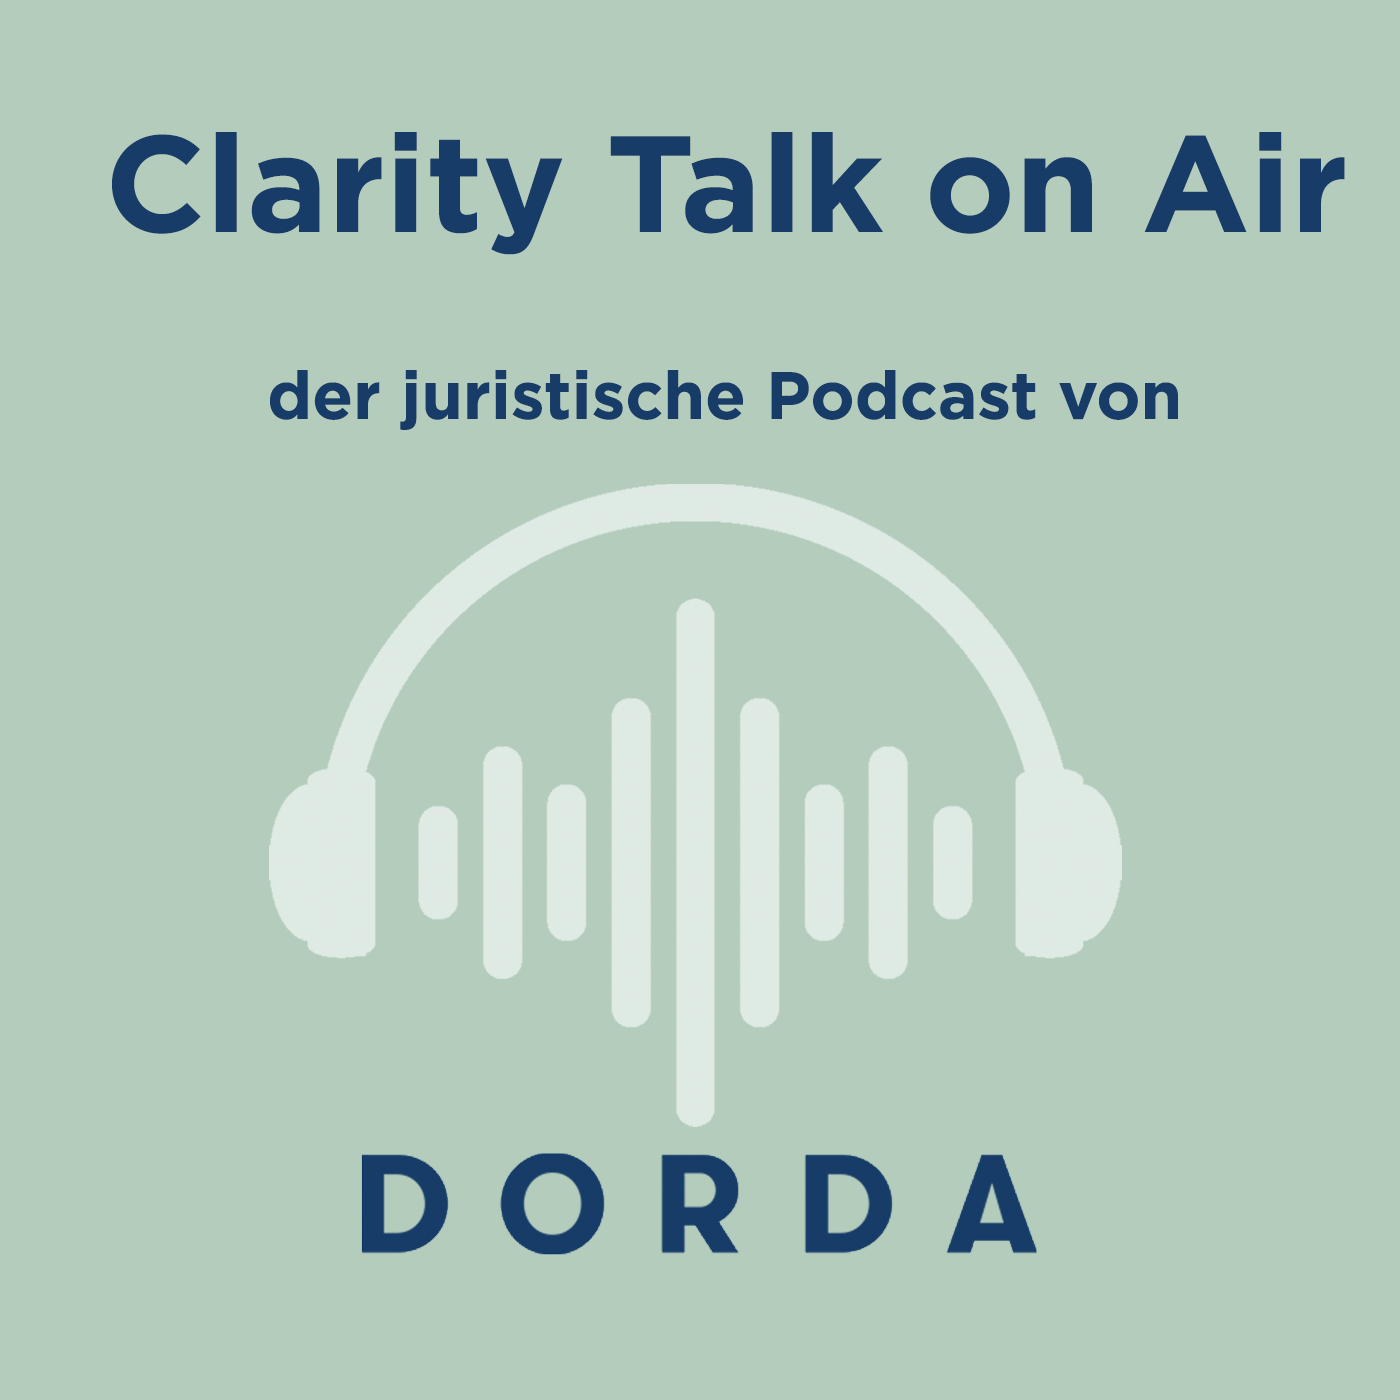 Clarity Talk on Air – der juristische Podcast von DORDA